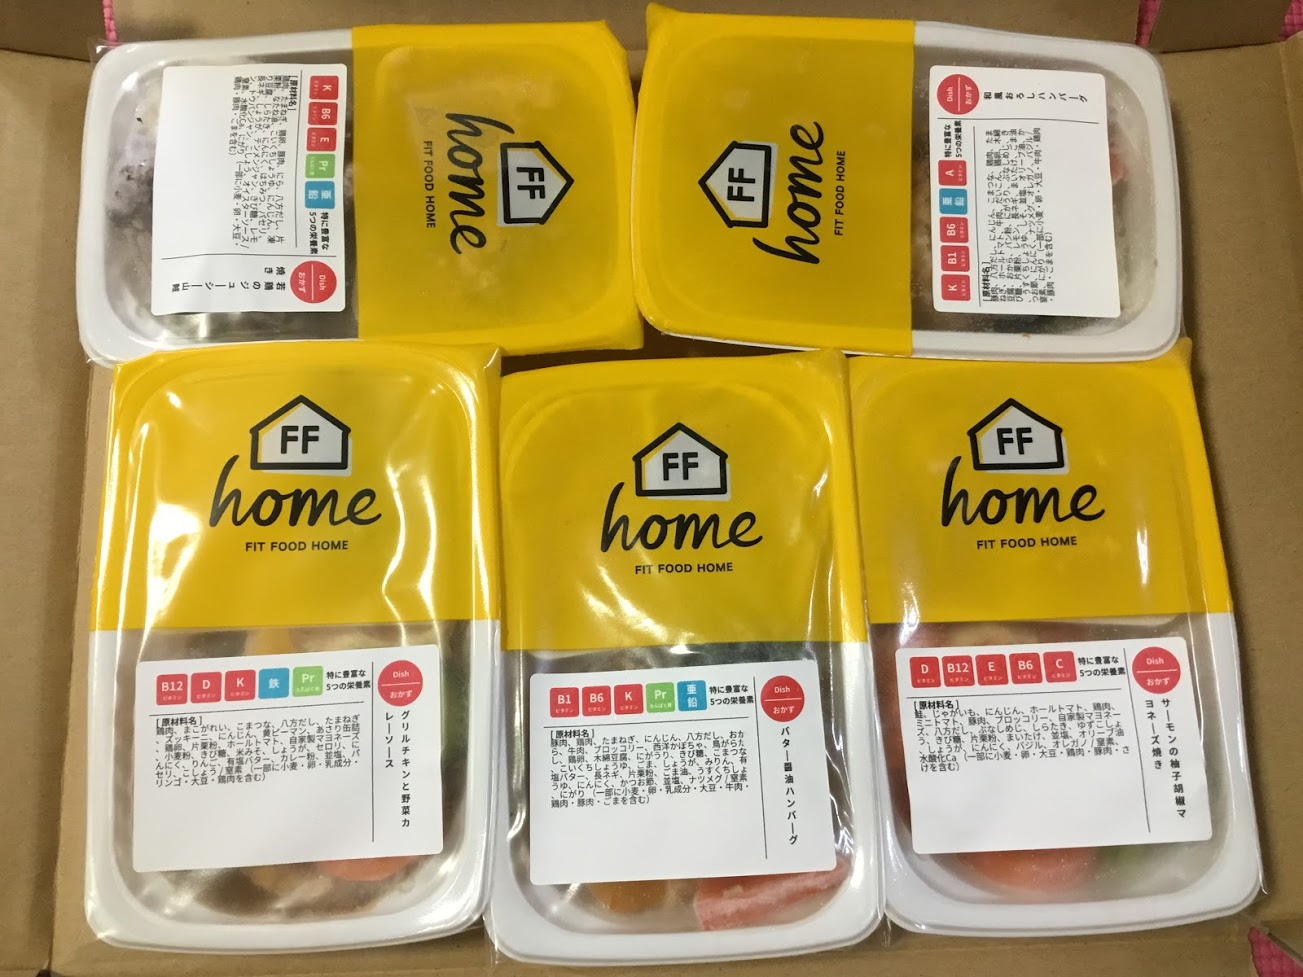 FIT FOOD HOMEおかずプレート